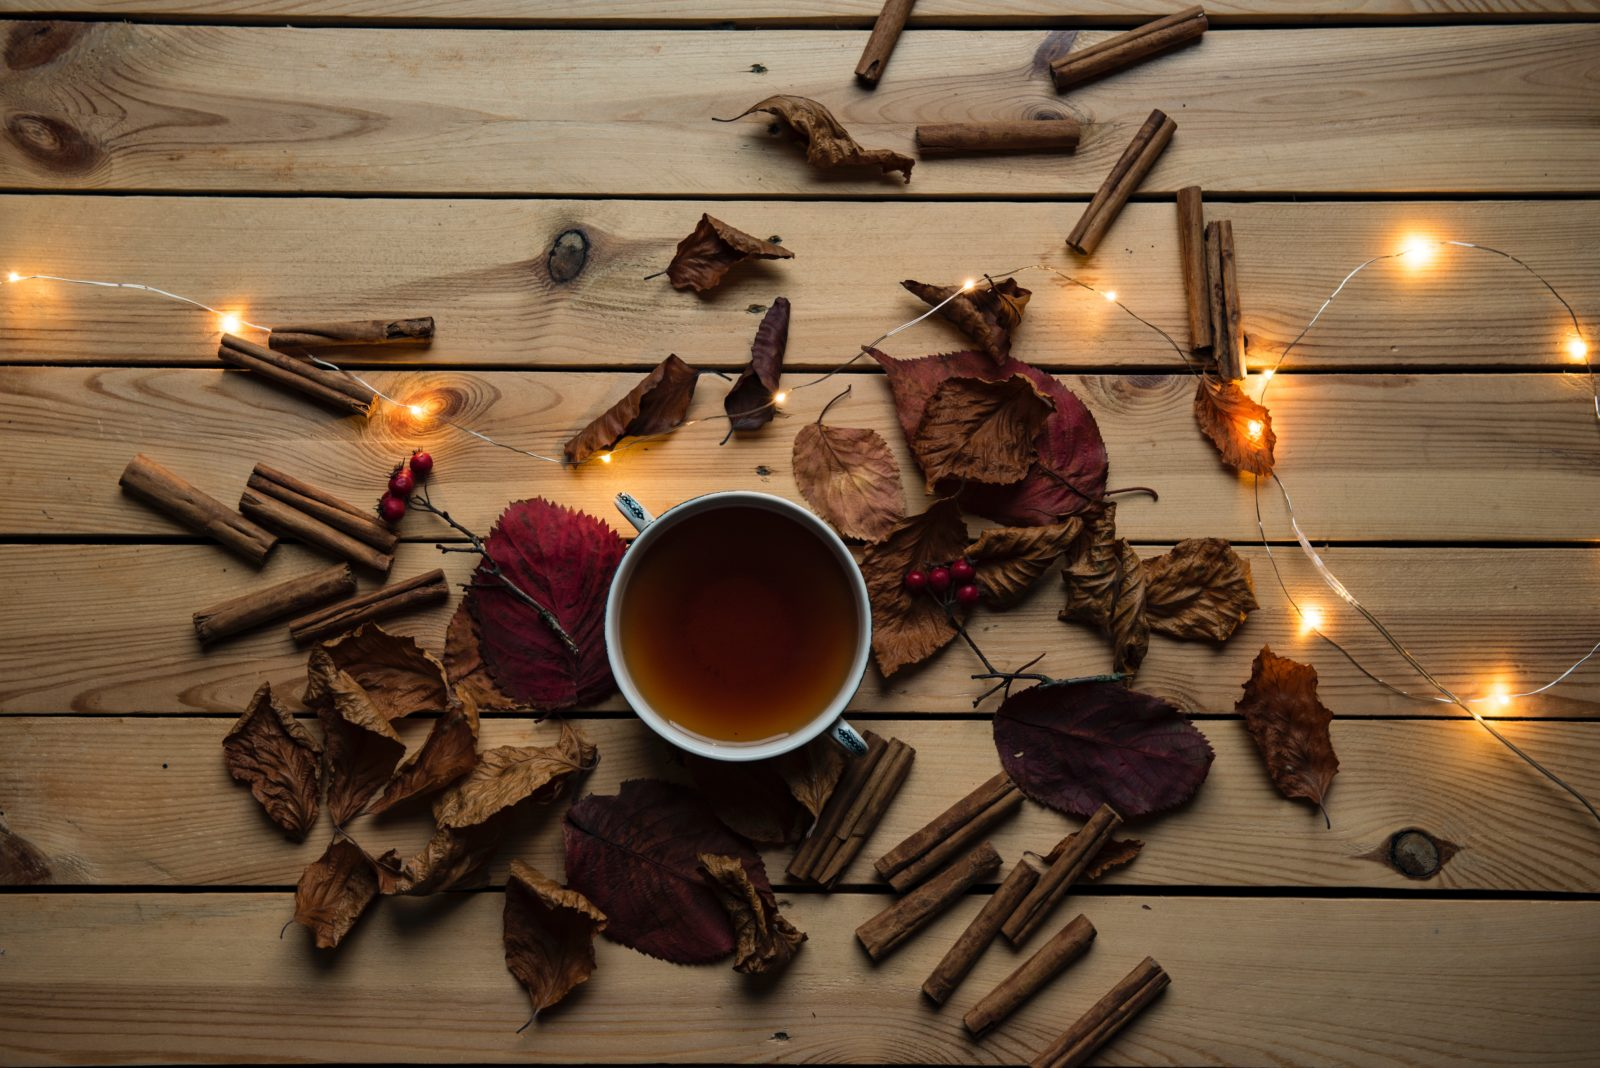 Oolong tea on a table with autumn leaves scattered around